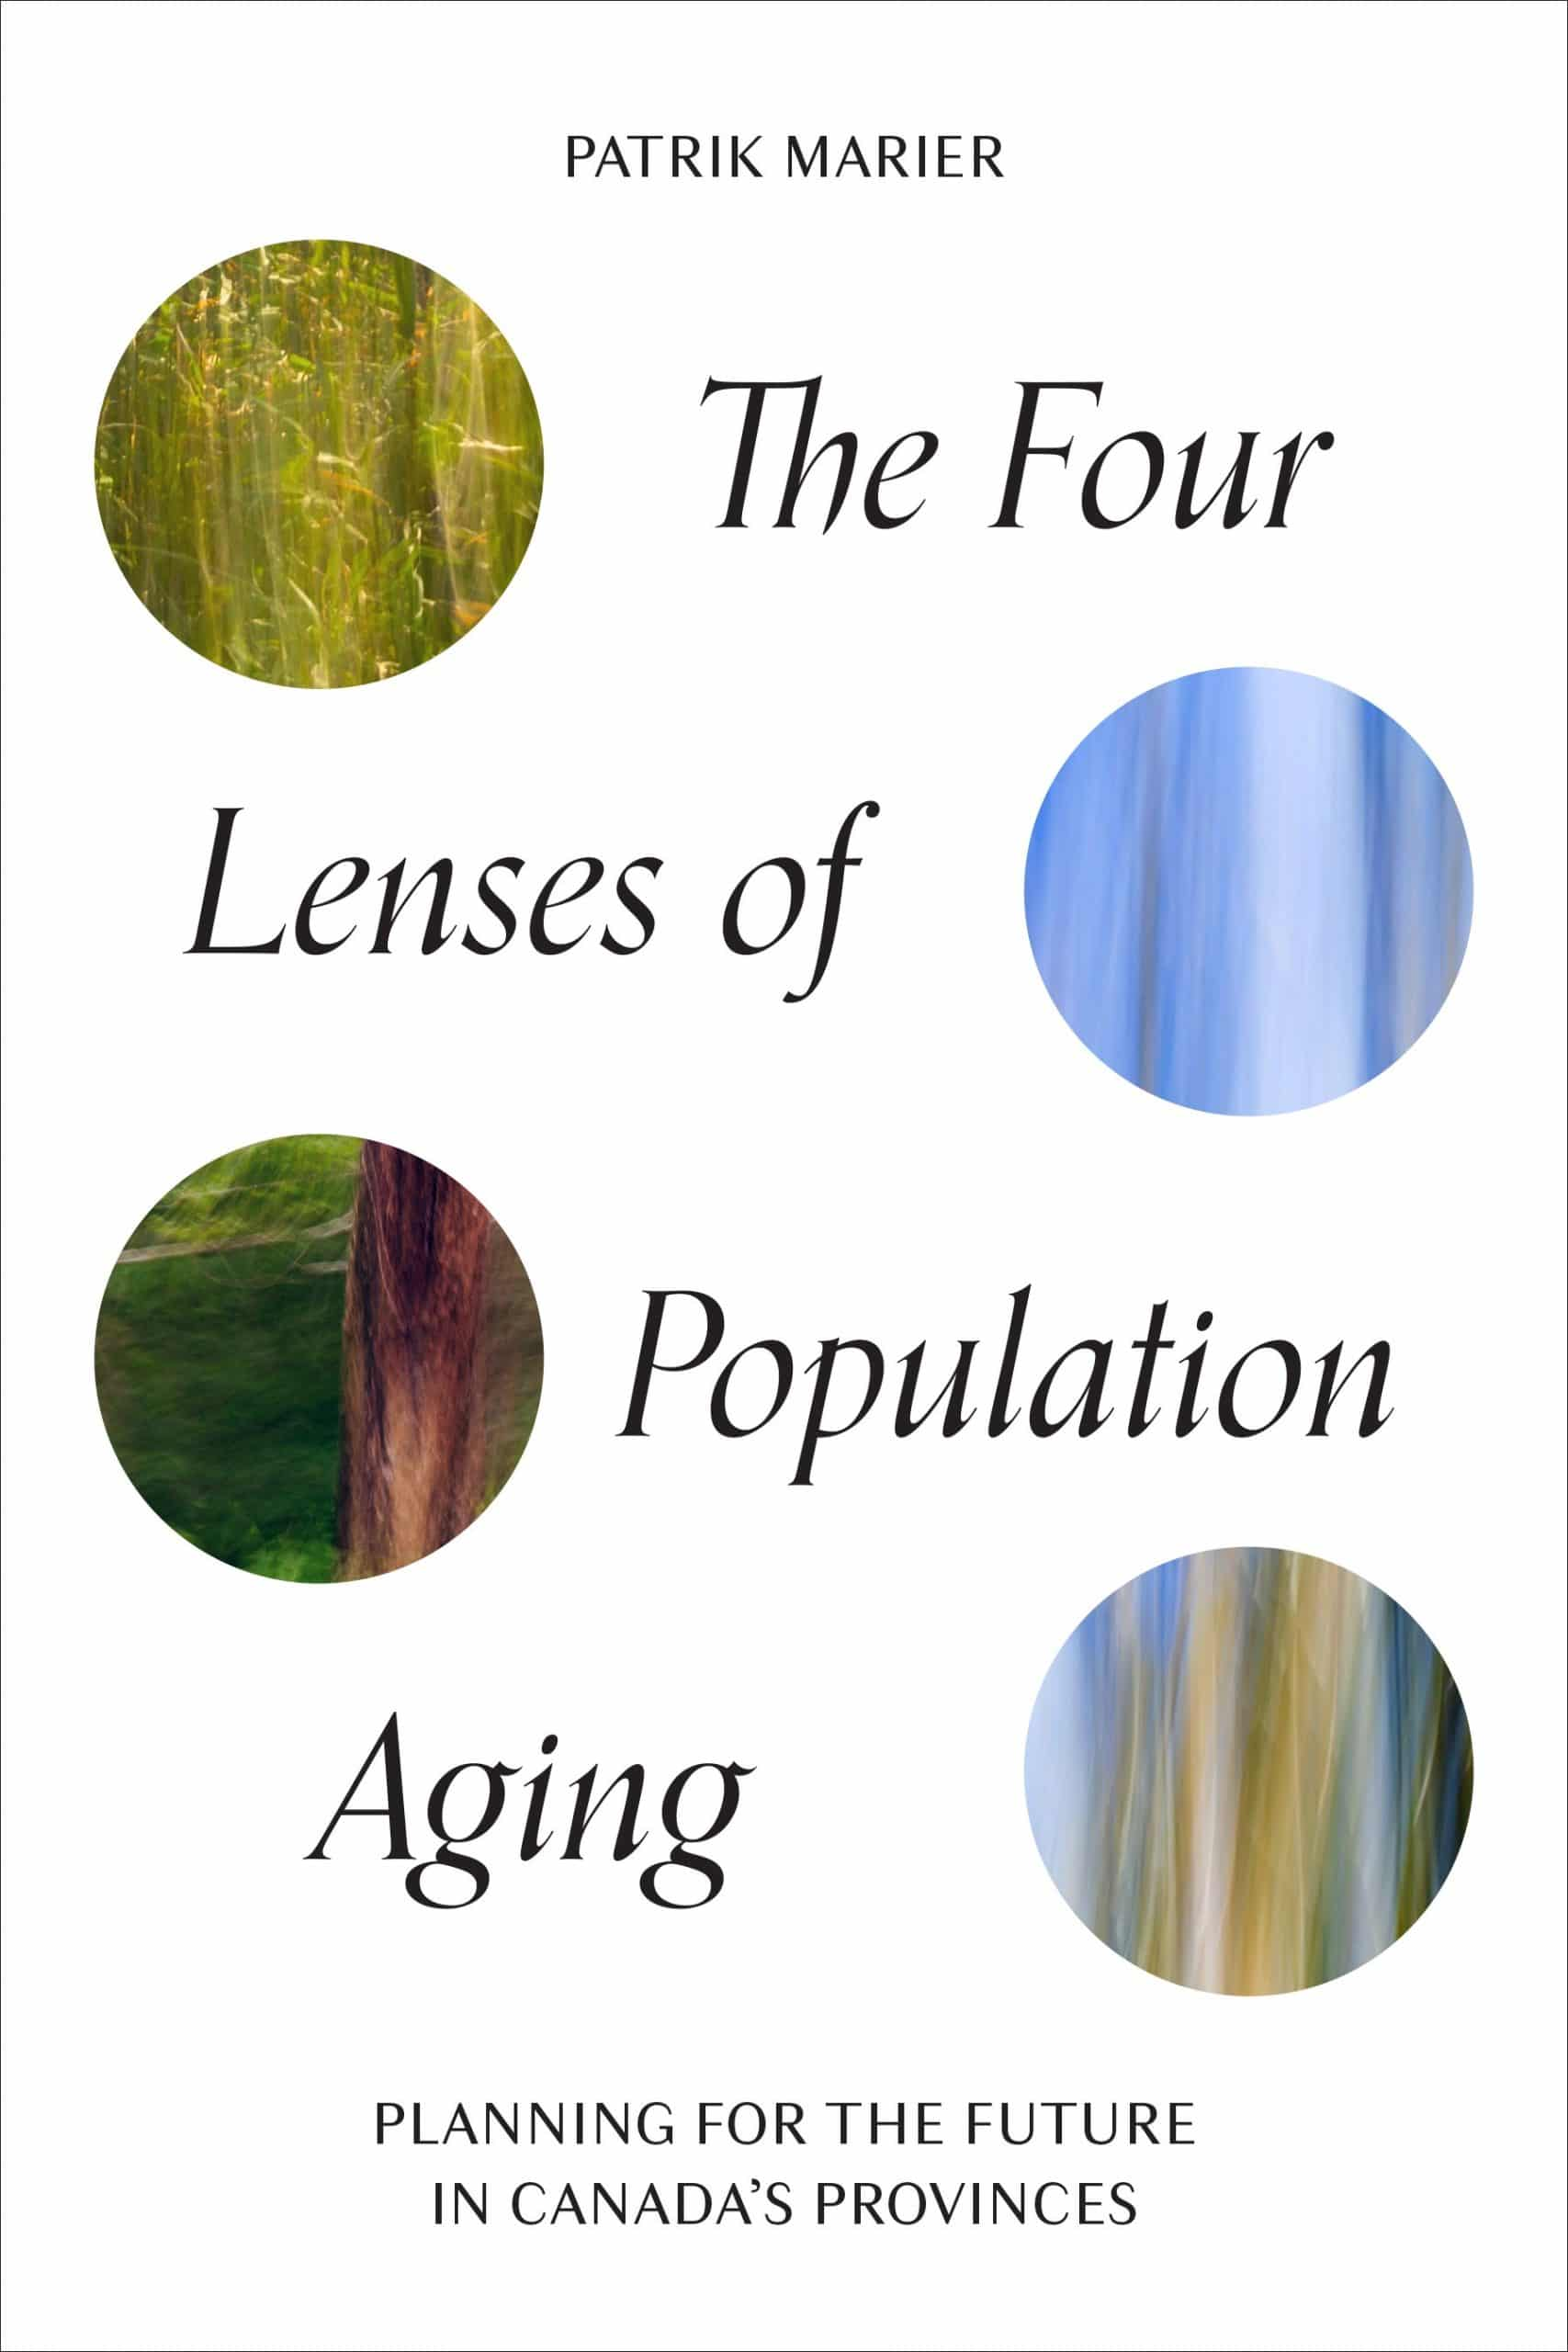 NOUVEAU LIVRE   The Four Lenses of Population Aging : Planning for the Future in Canada's Provinces